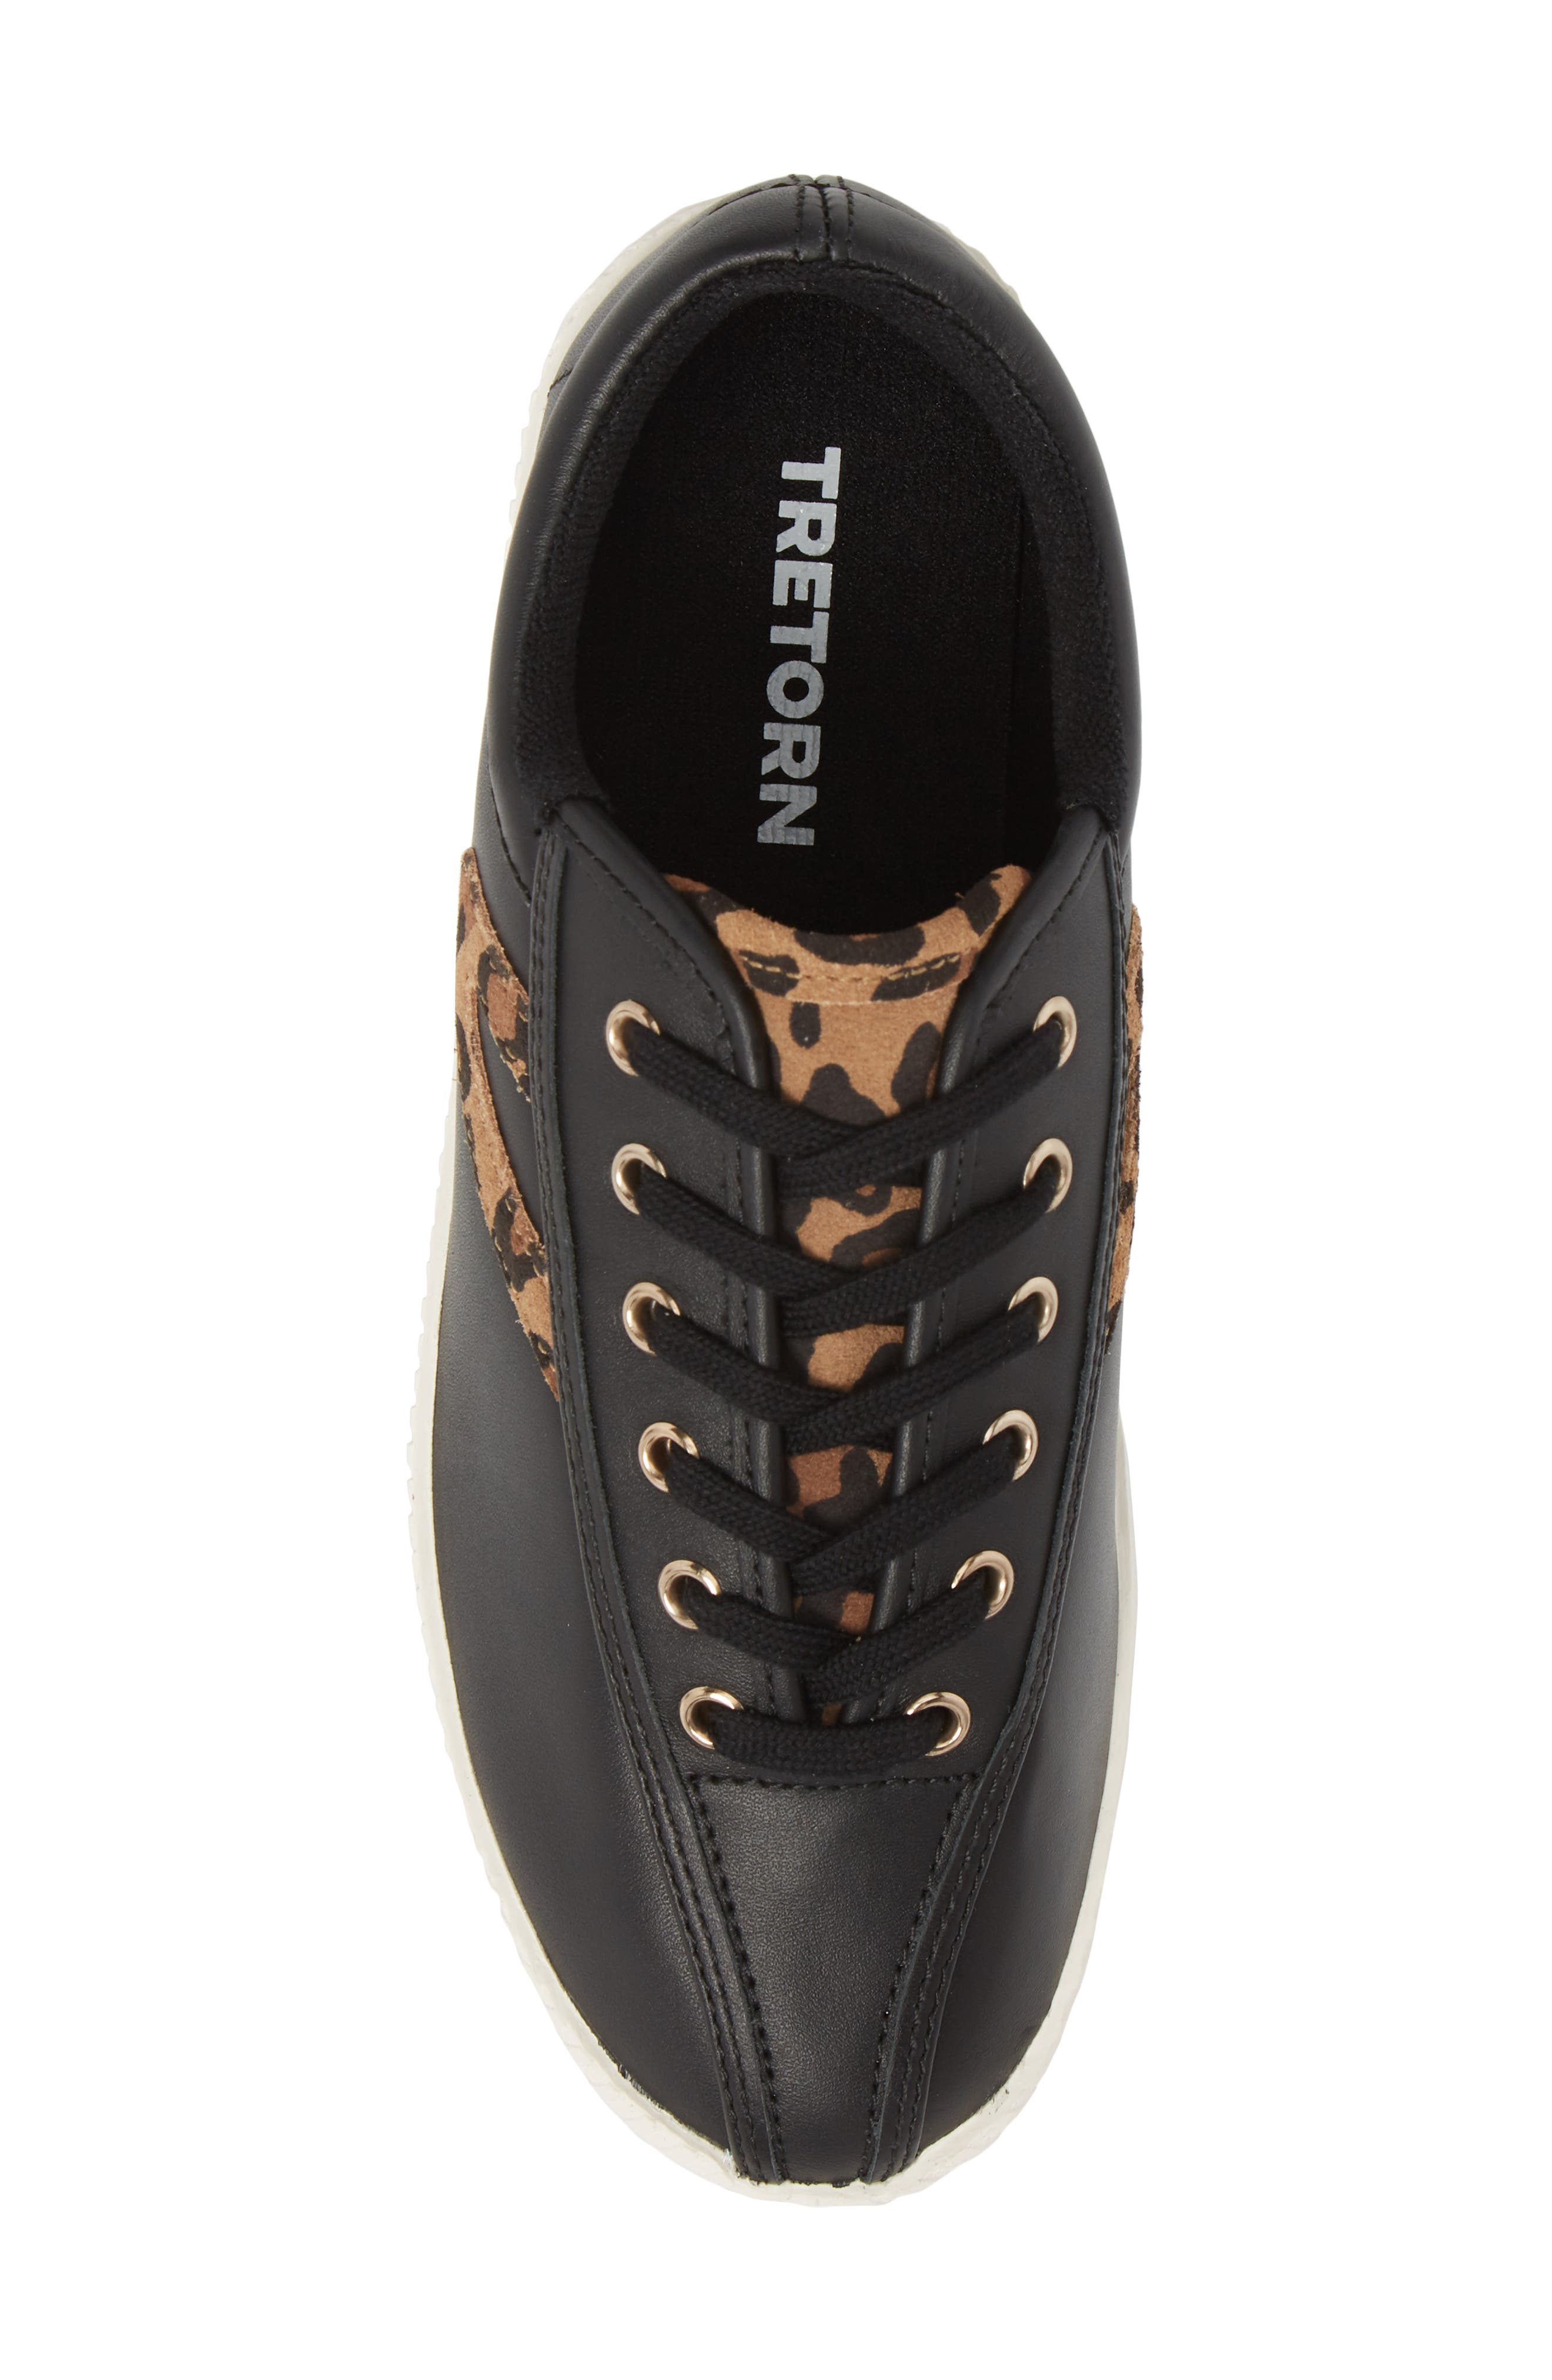 Patterned Sneaker,                             Alternate thumbnail 5, color,                             BLACK/ TAN/ BLACK LEATHER